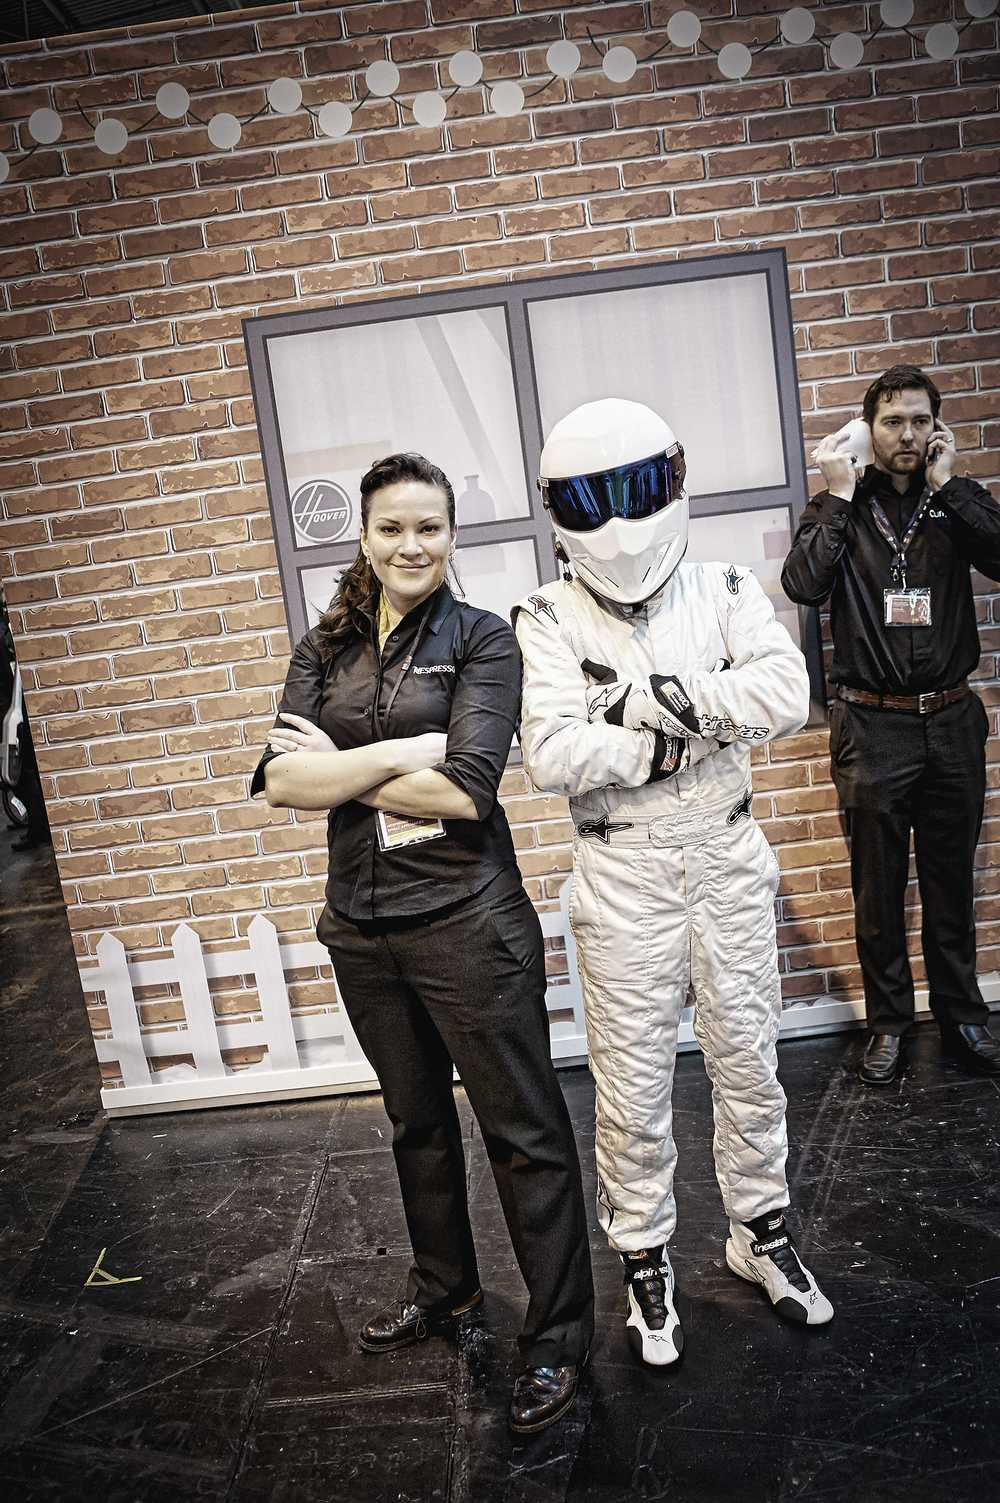 dennisdavisphotography_people_thestig.jpg